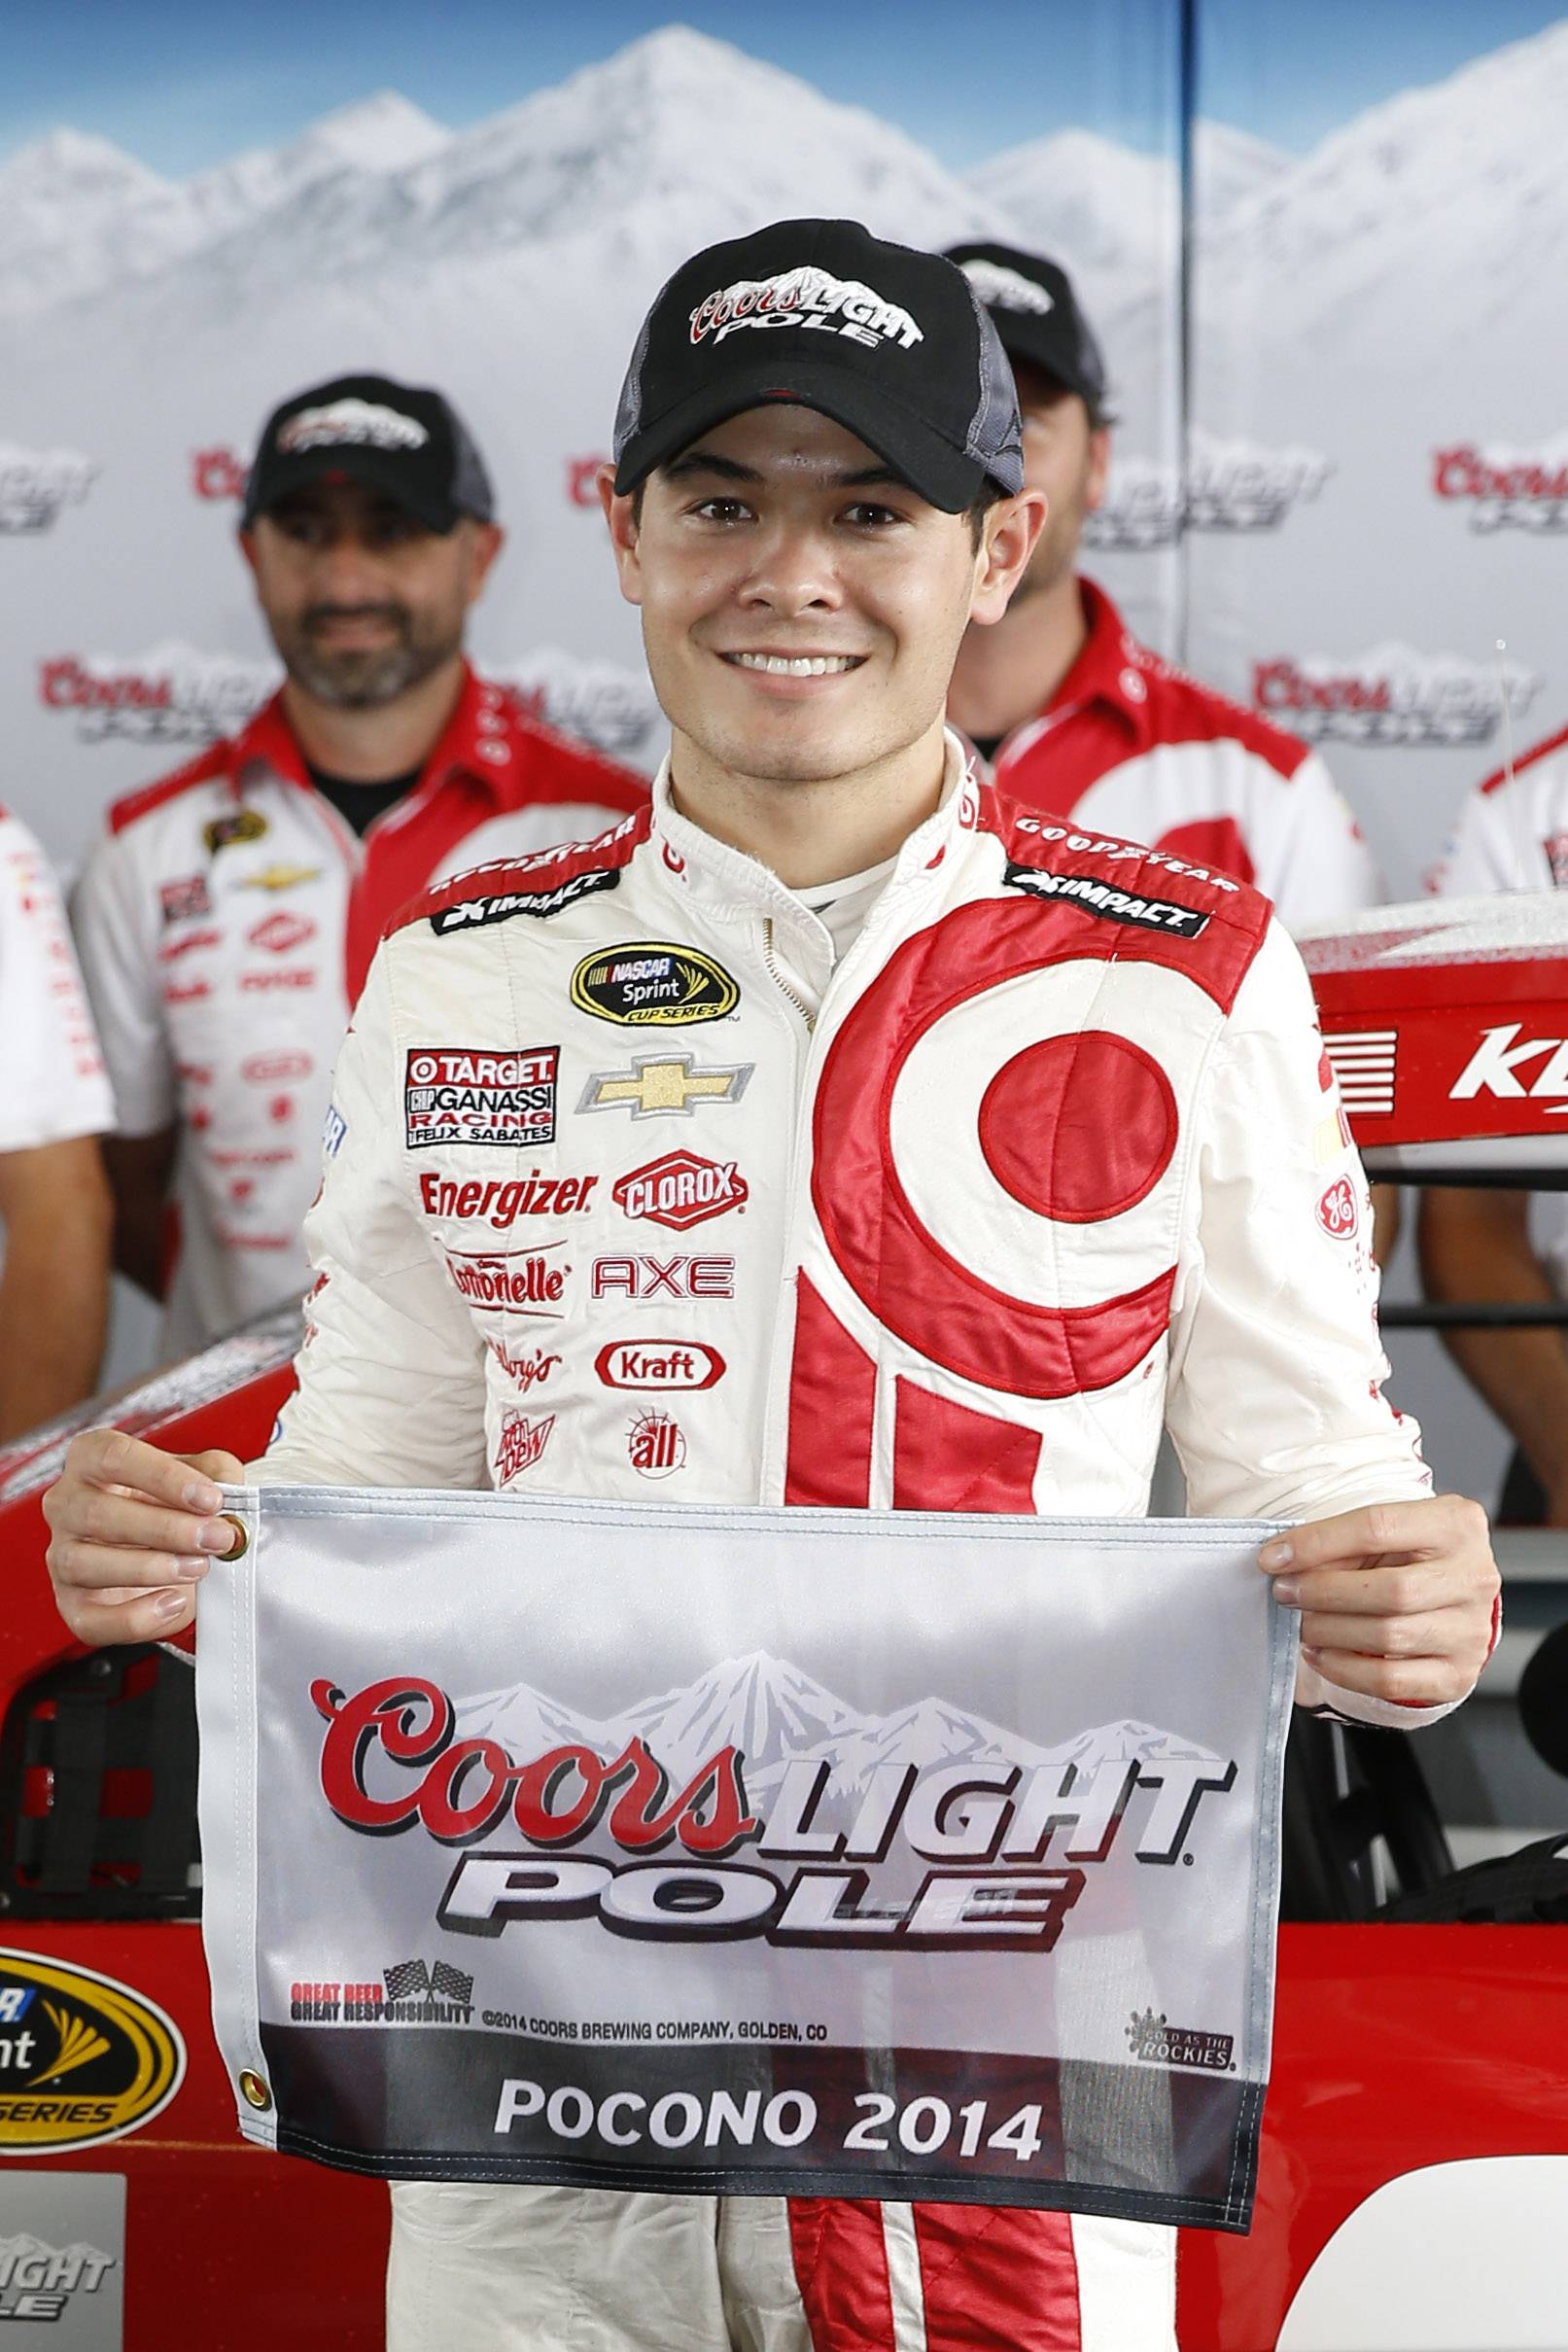 Kyle Larson poses with the pole award after qualifying in first position for Sunday's NASCAR Sprint Cup Series auto race at Pocono Raceway, Friday, Aug. 1, 2014, in Long Pond, Pa.